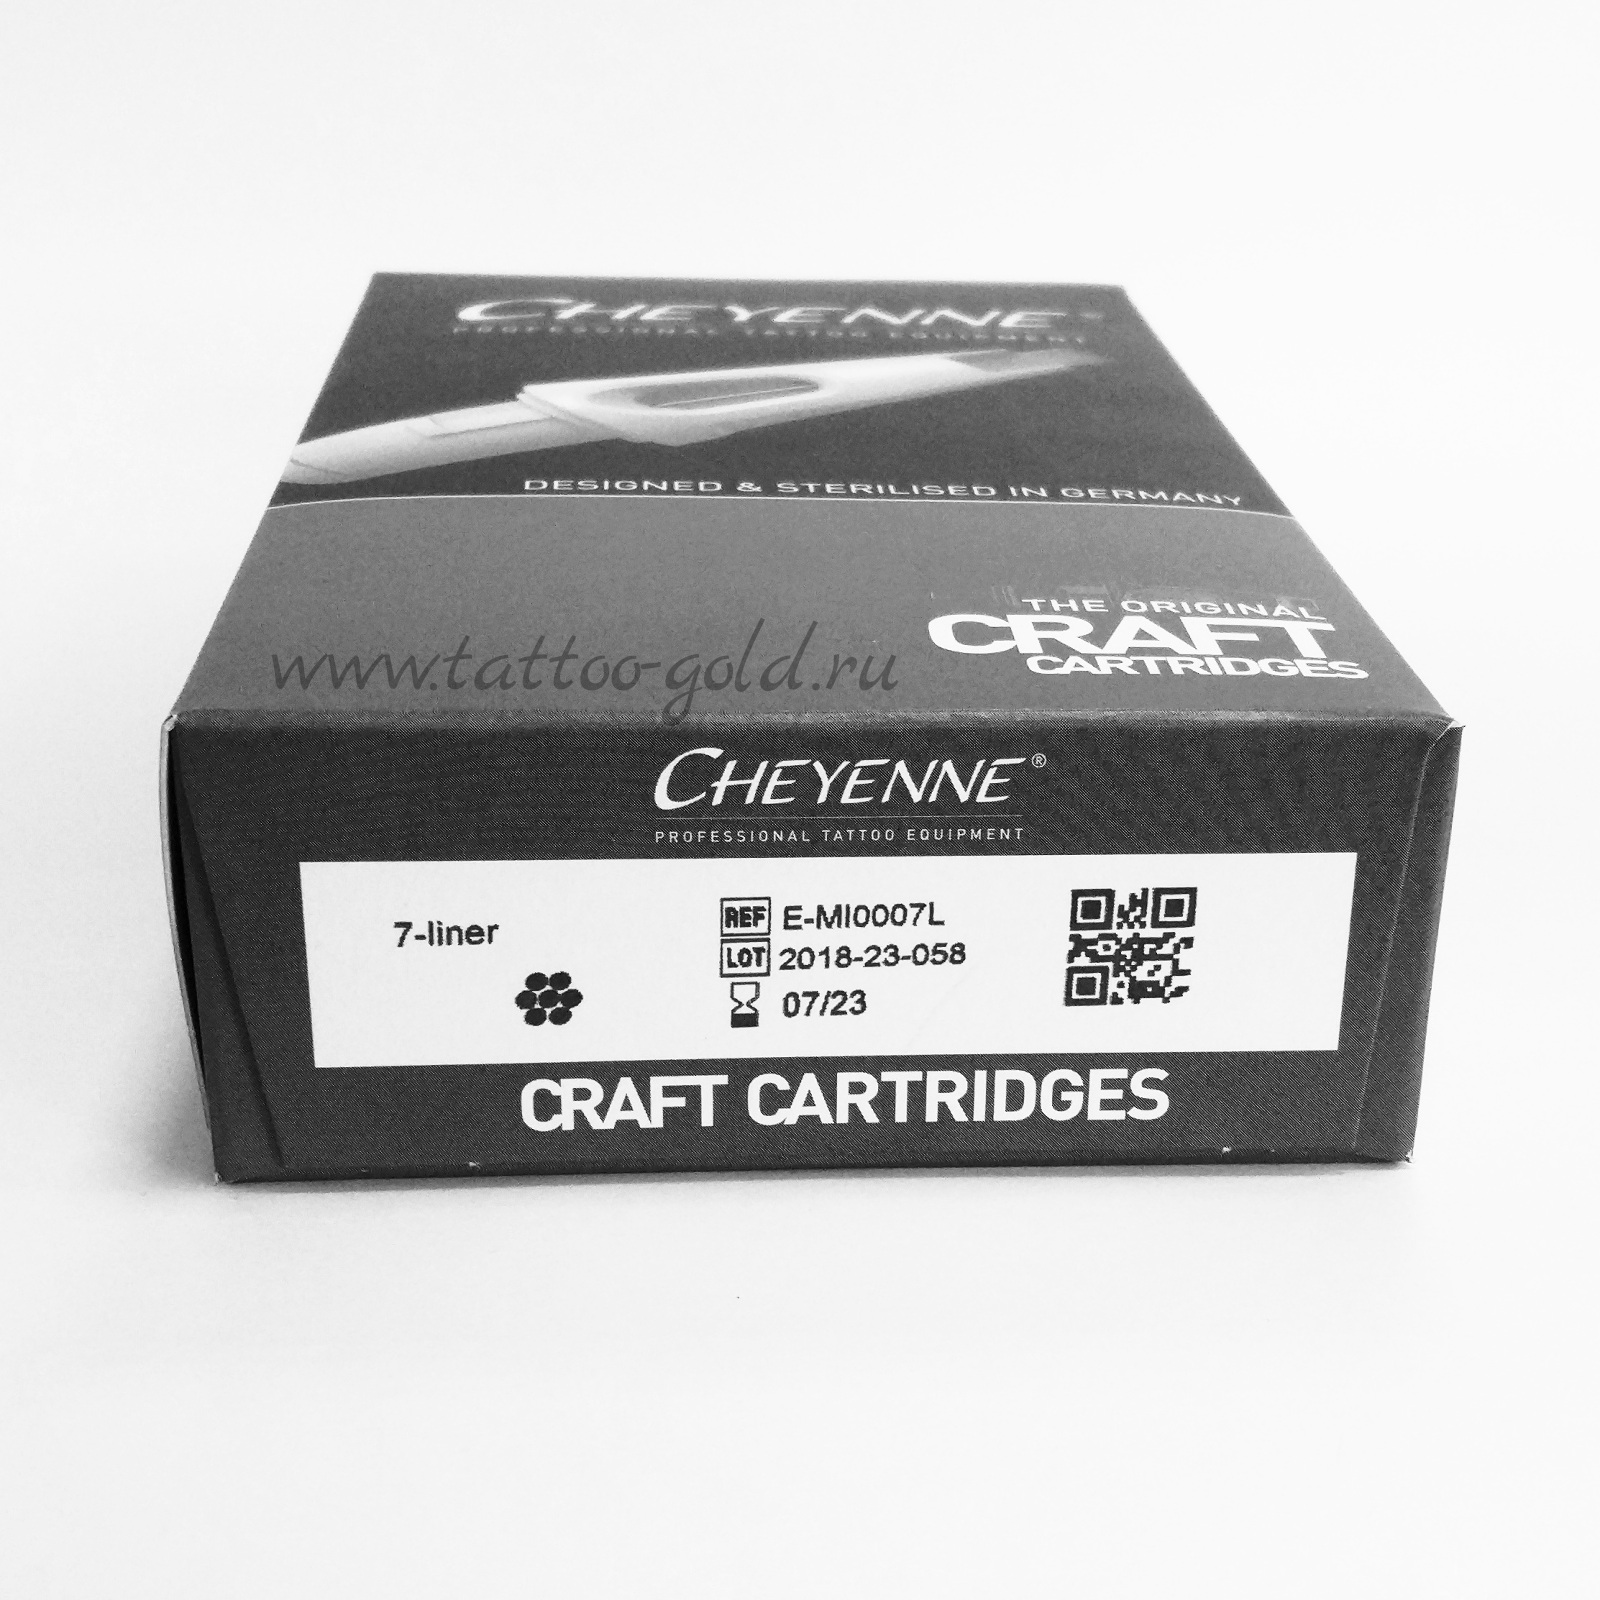 картинка Cheyenne Craft 7RL от магазина тату+